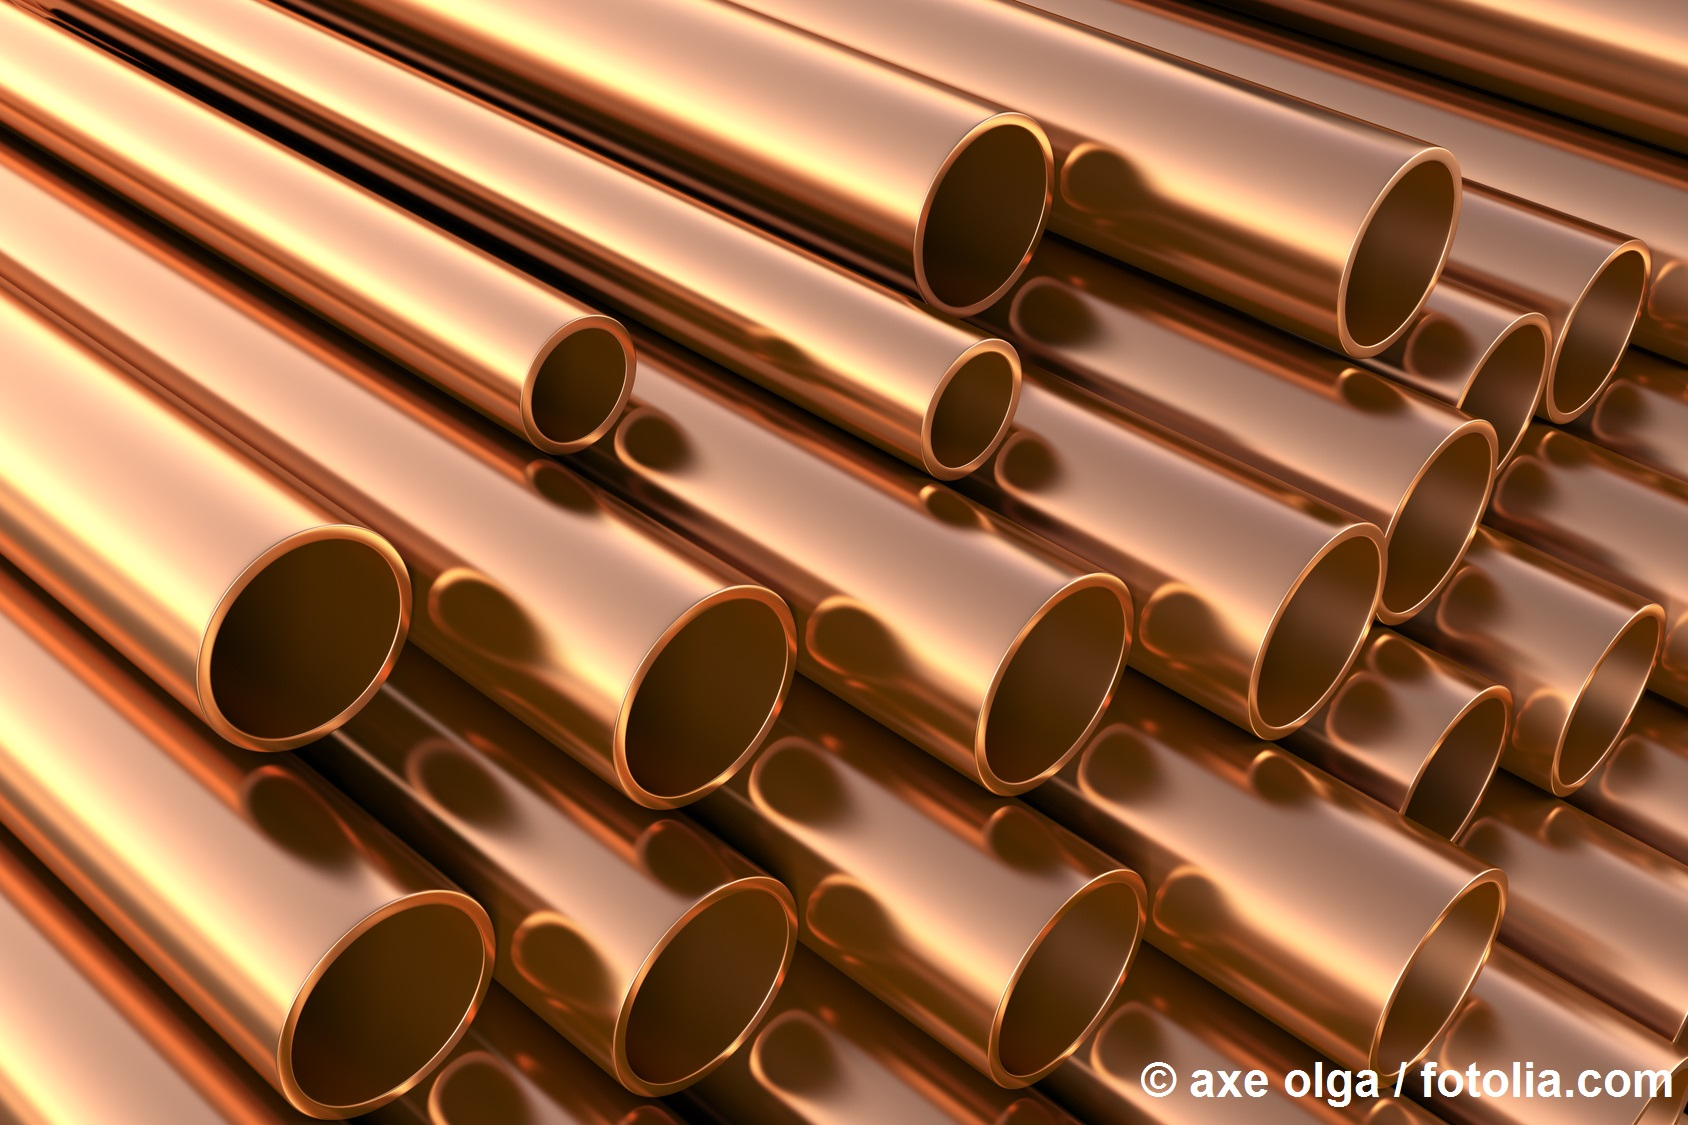 staple of copper pipes as application example for copper